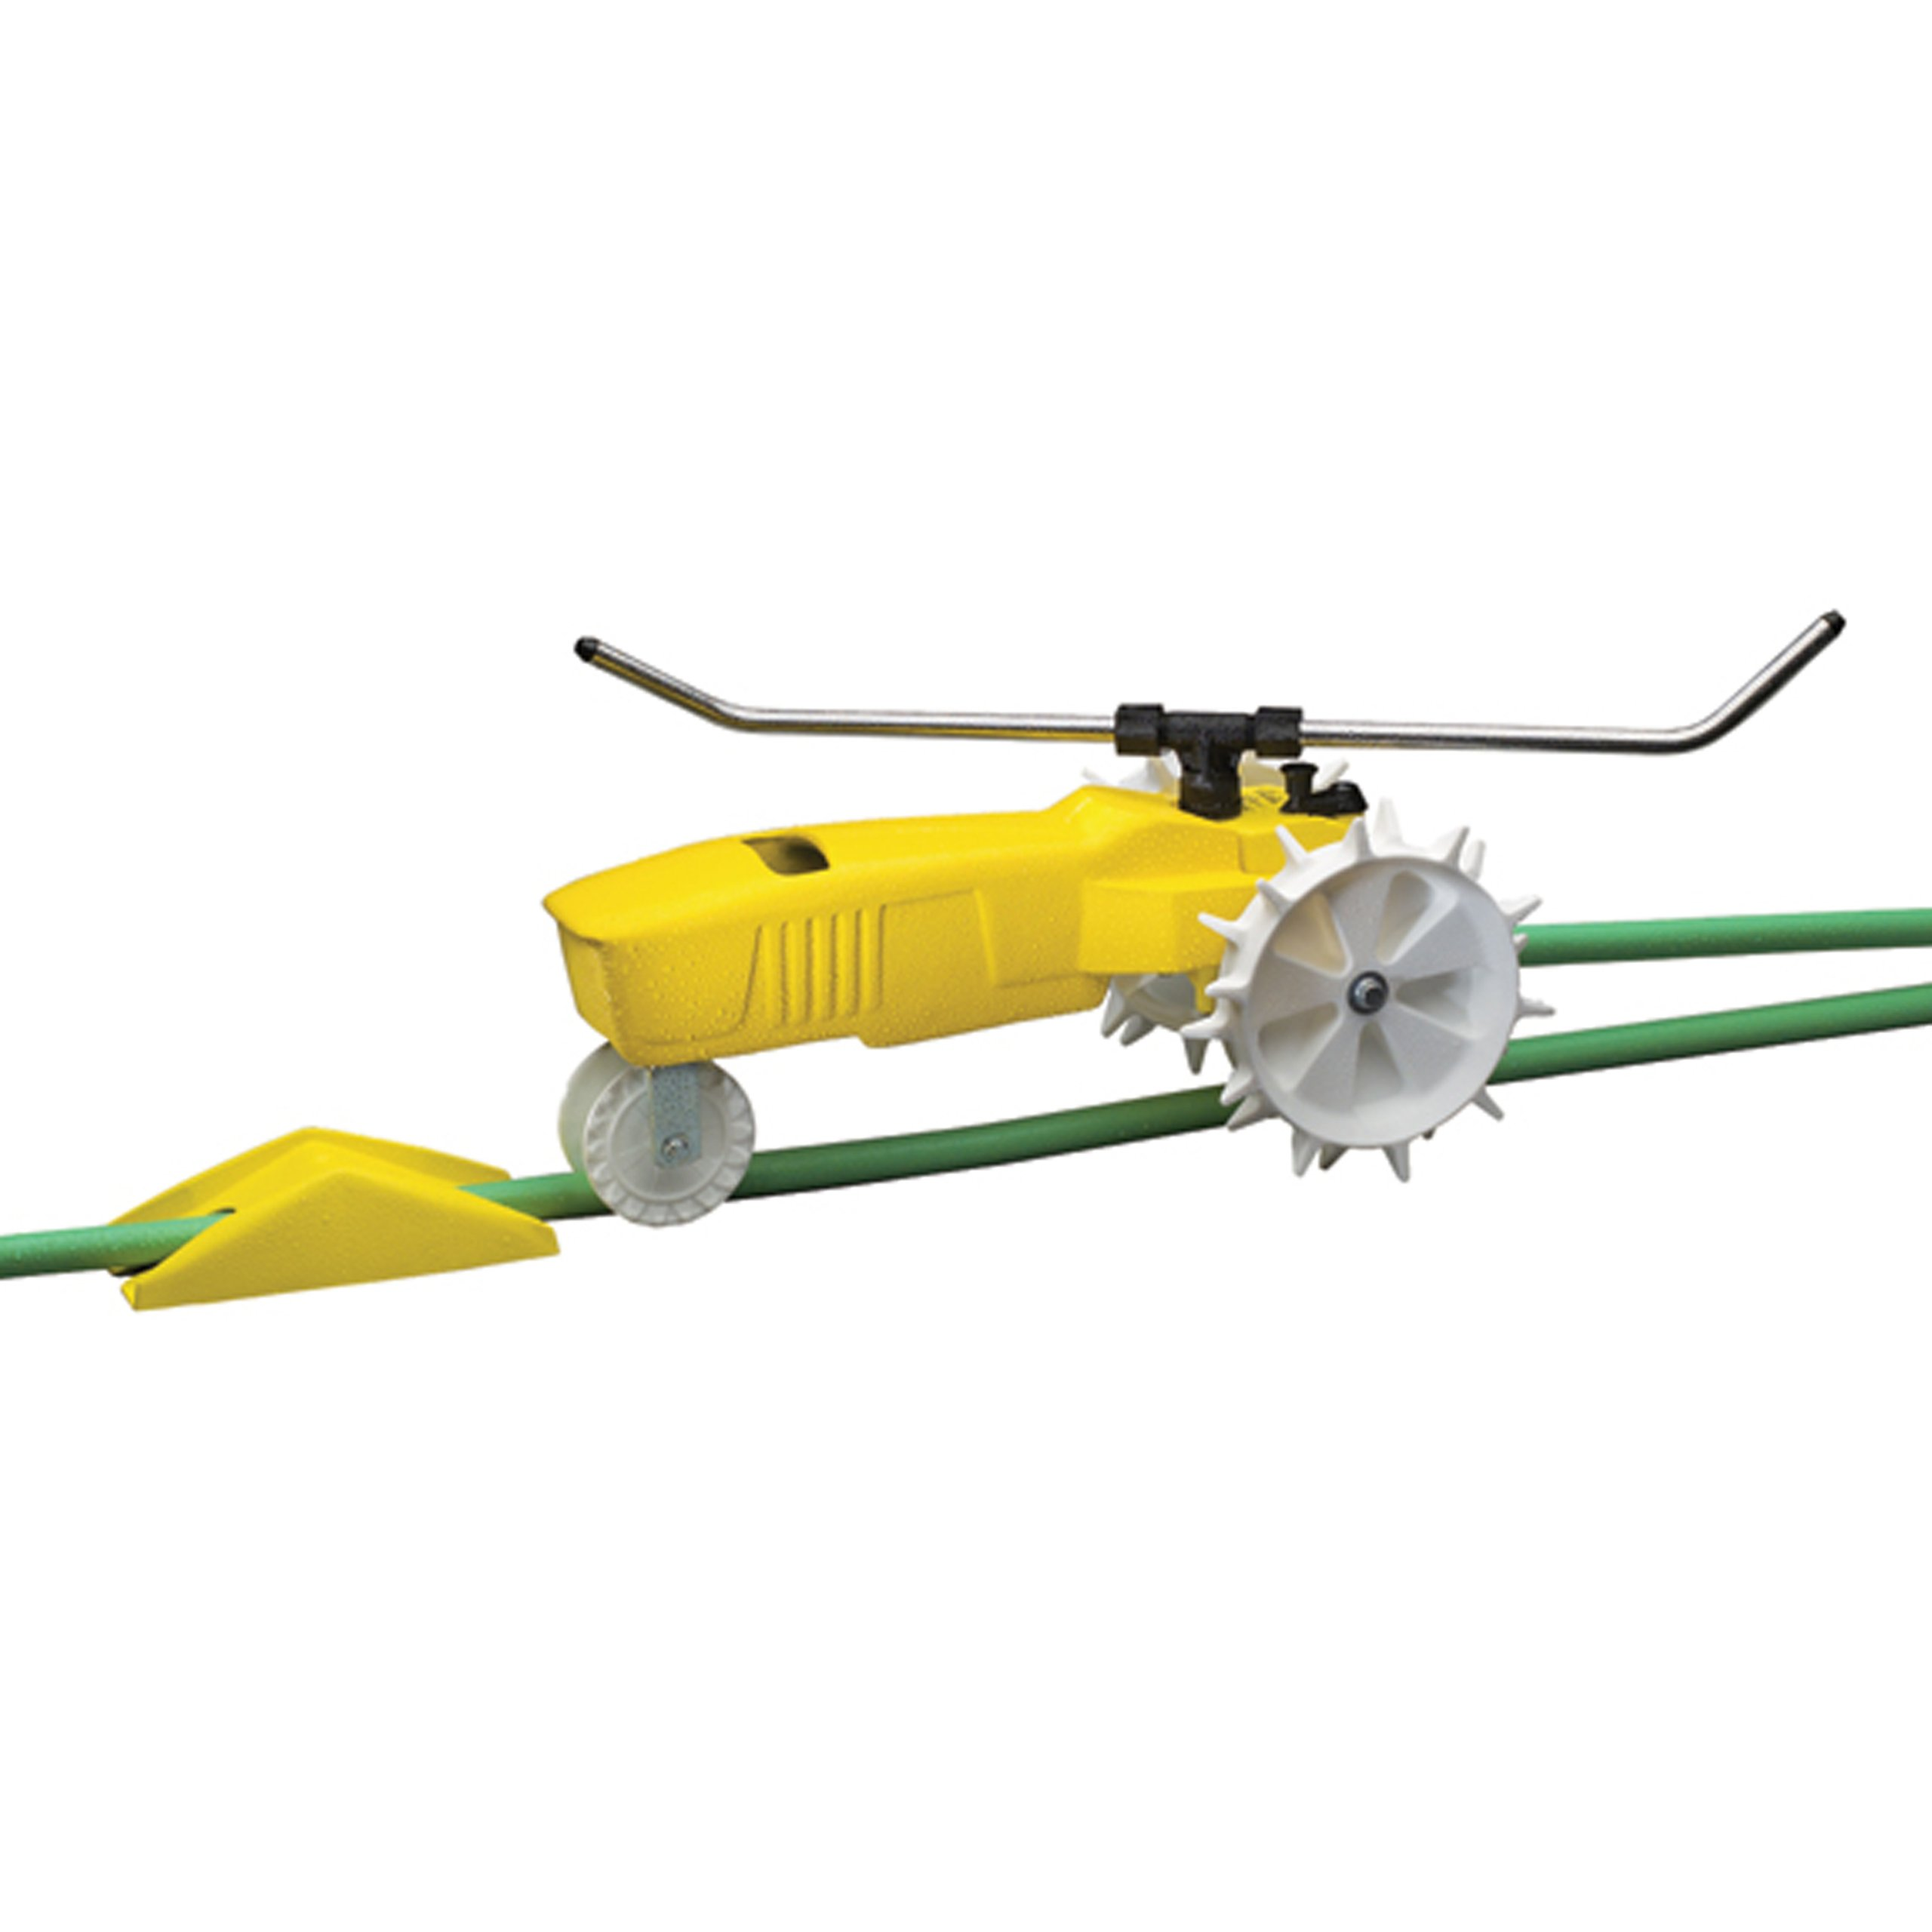 Nelson 818653-1001 Traveling Sprinkler RainTrain 13,500 Square feet Yellow 818653